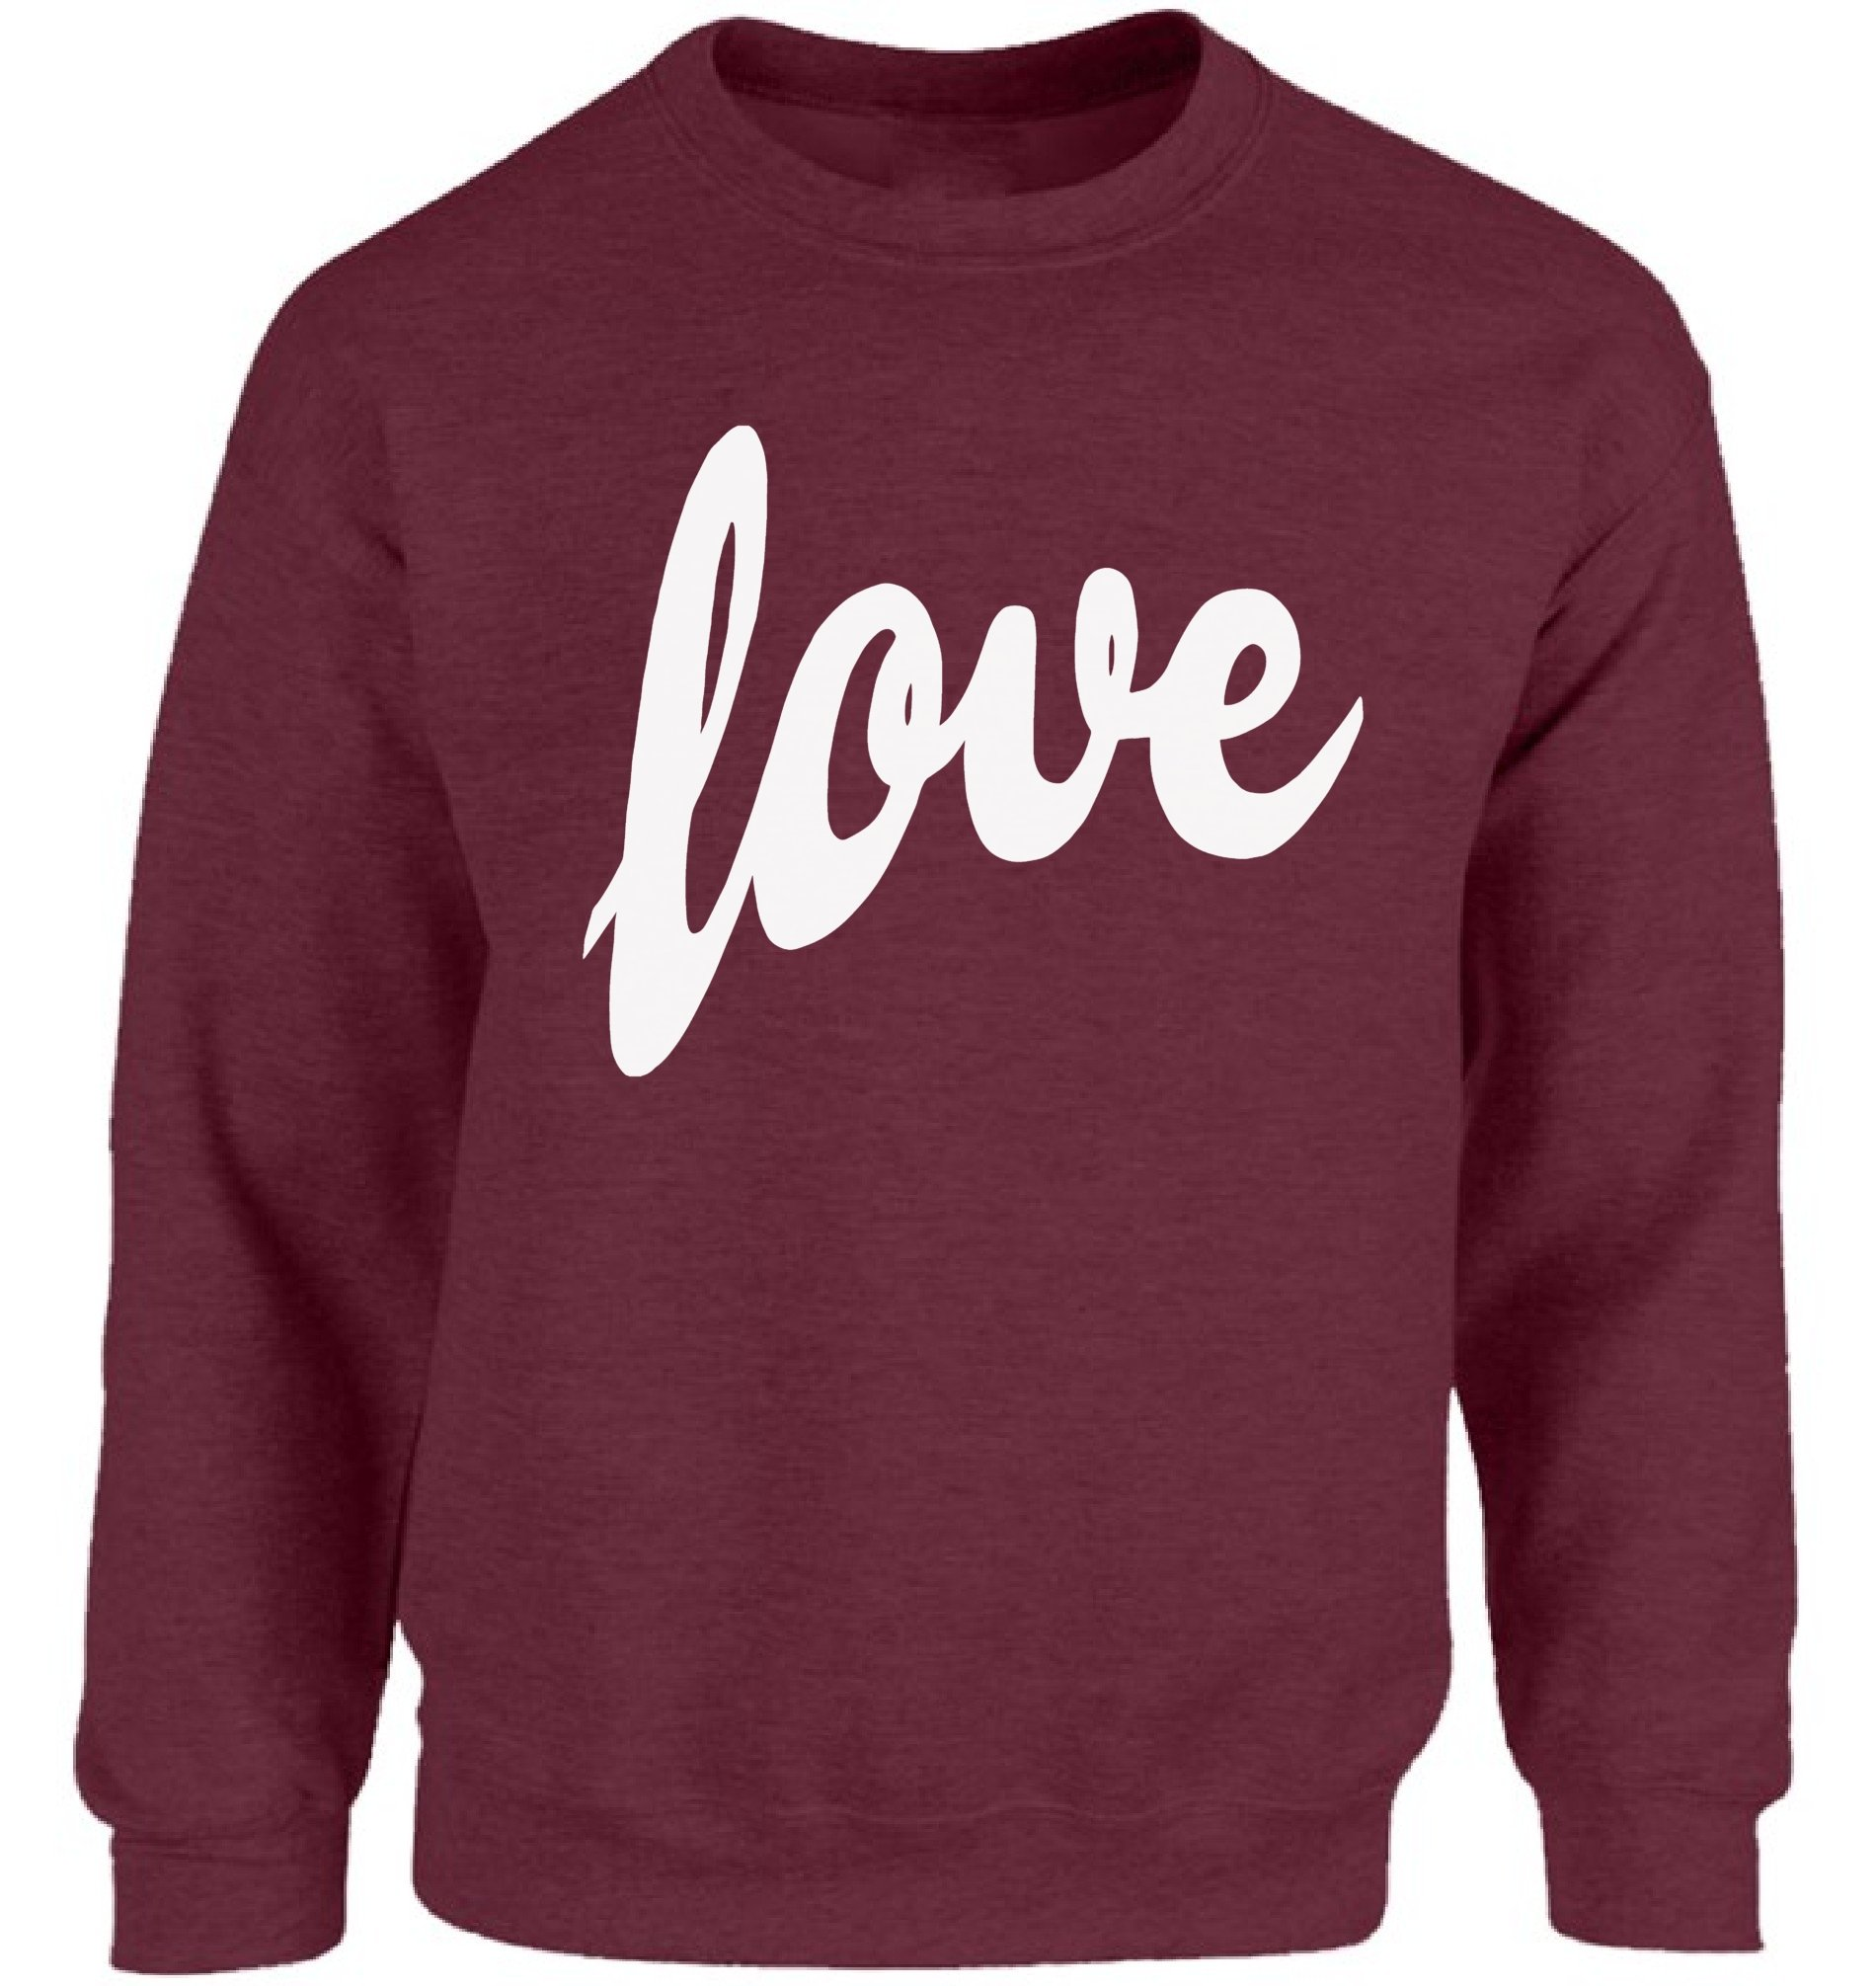 Vizor Love Print Sweatshirt Valentine's Day Love Sweater For him and Her Valentine's Day Gifts For Men and Women Maroon S